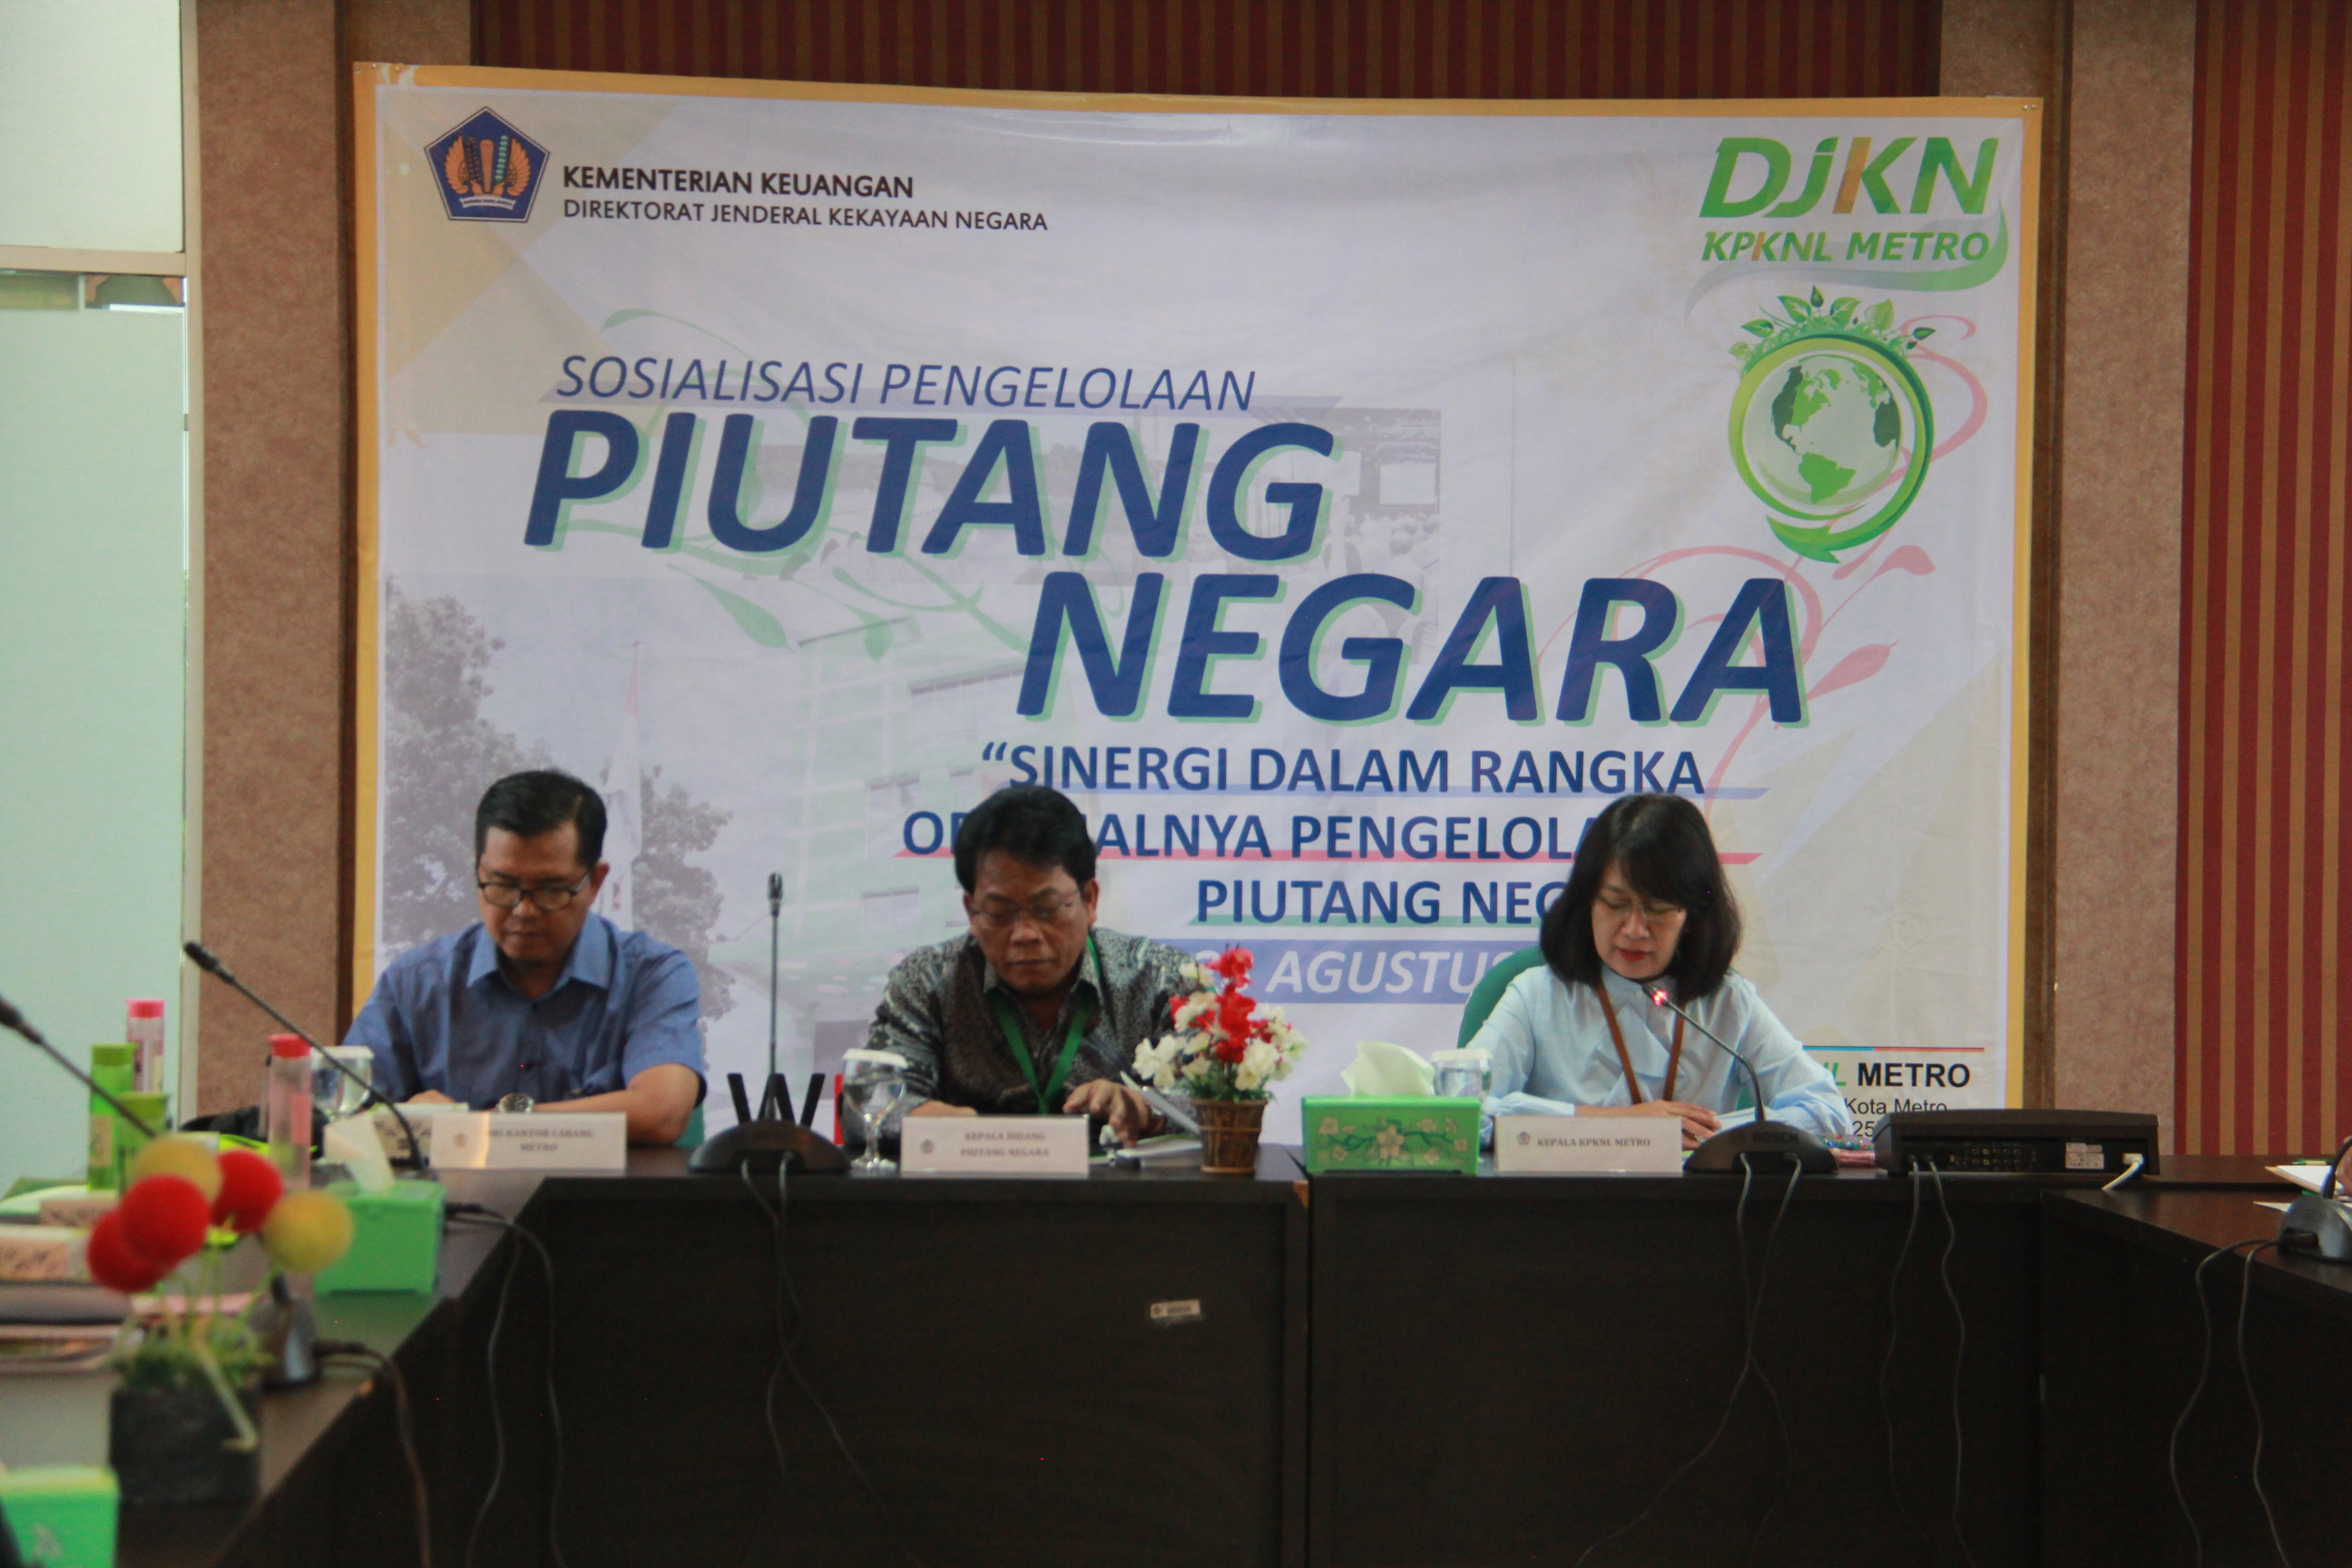 Semarak Launching Inovasi Virtual Account Piutang Negara